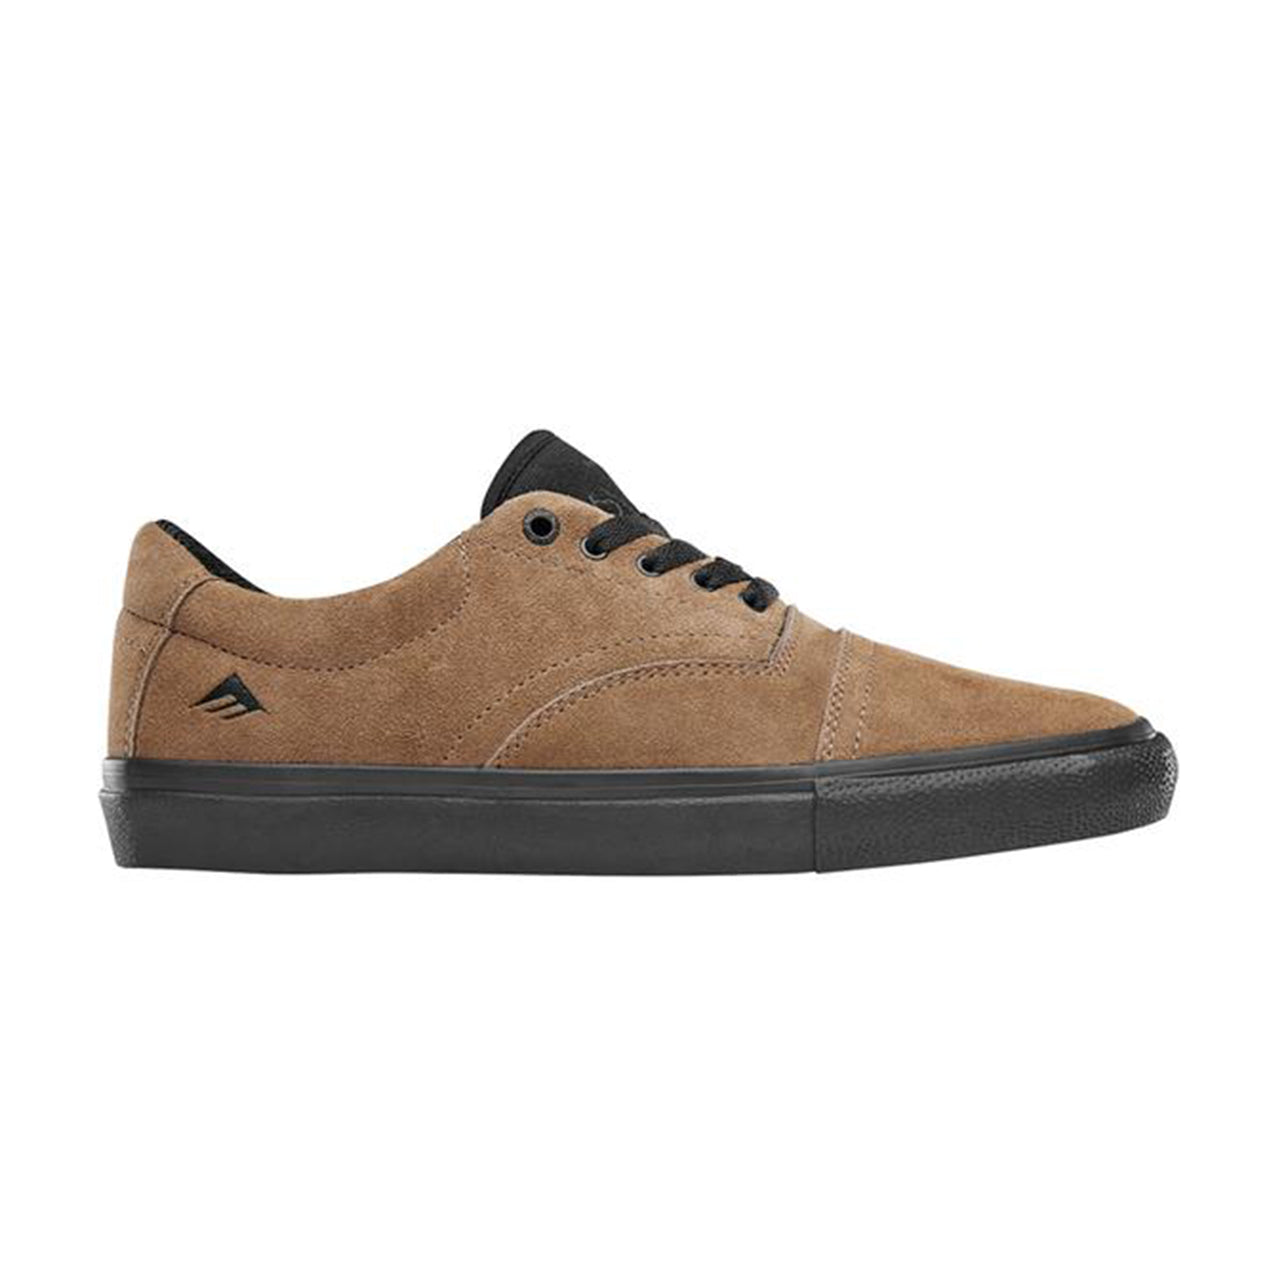 Emerica - Provider - Tan/Black